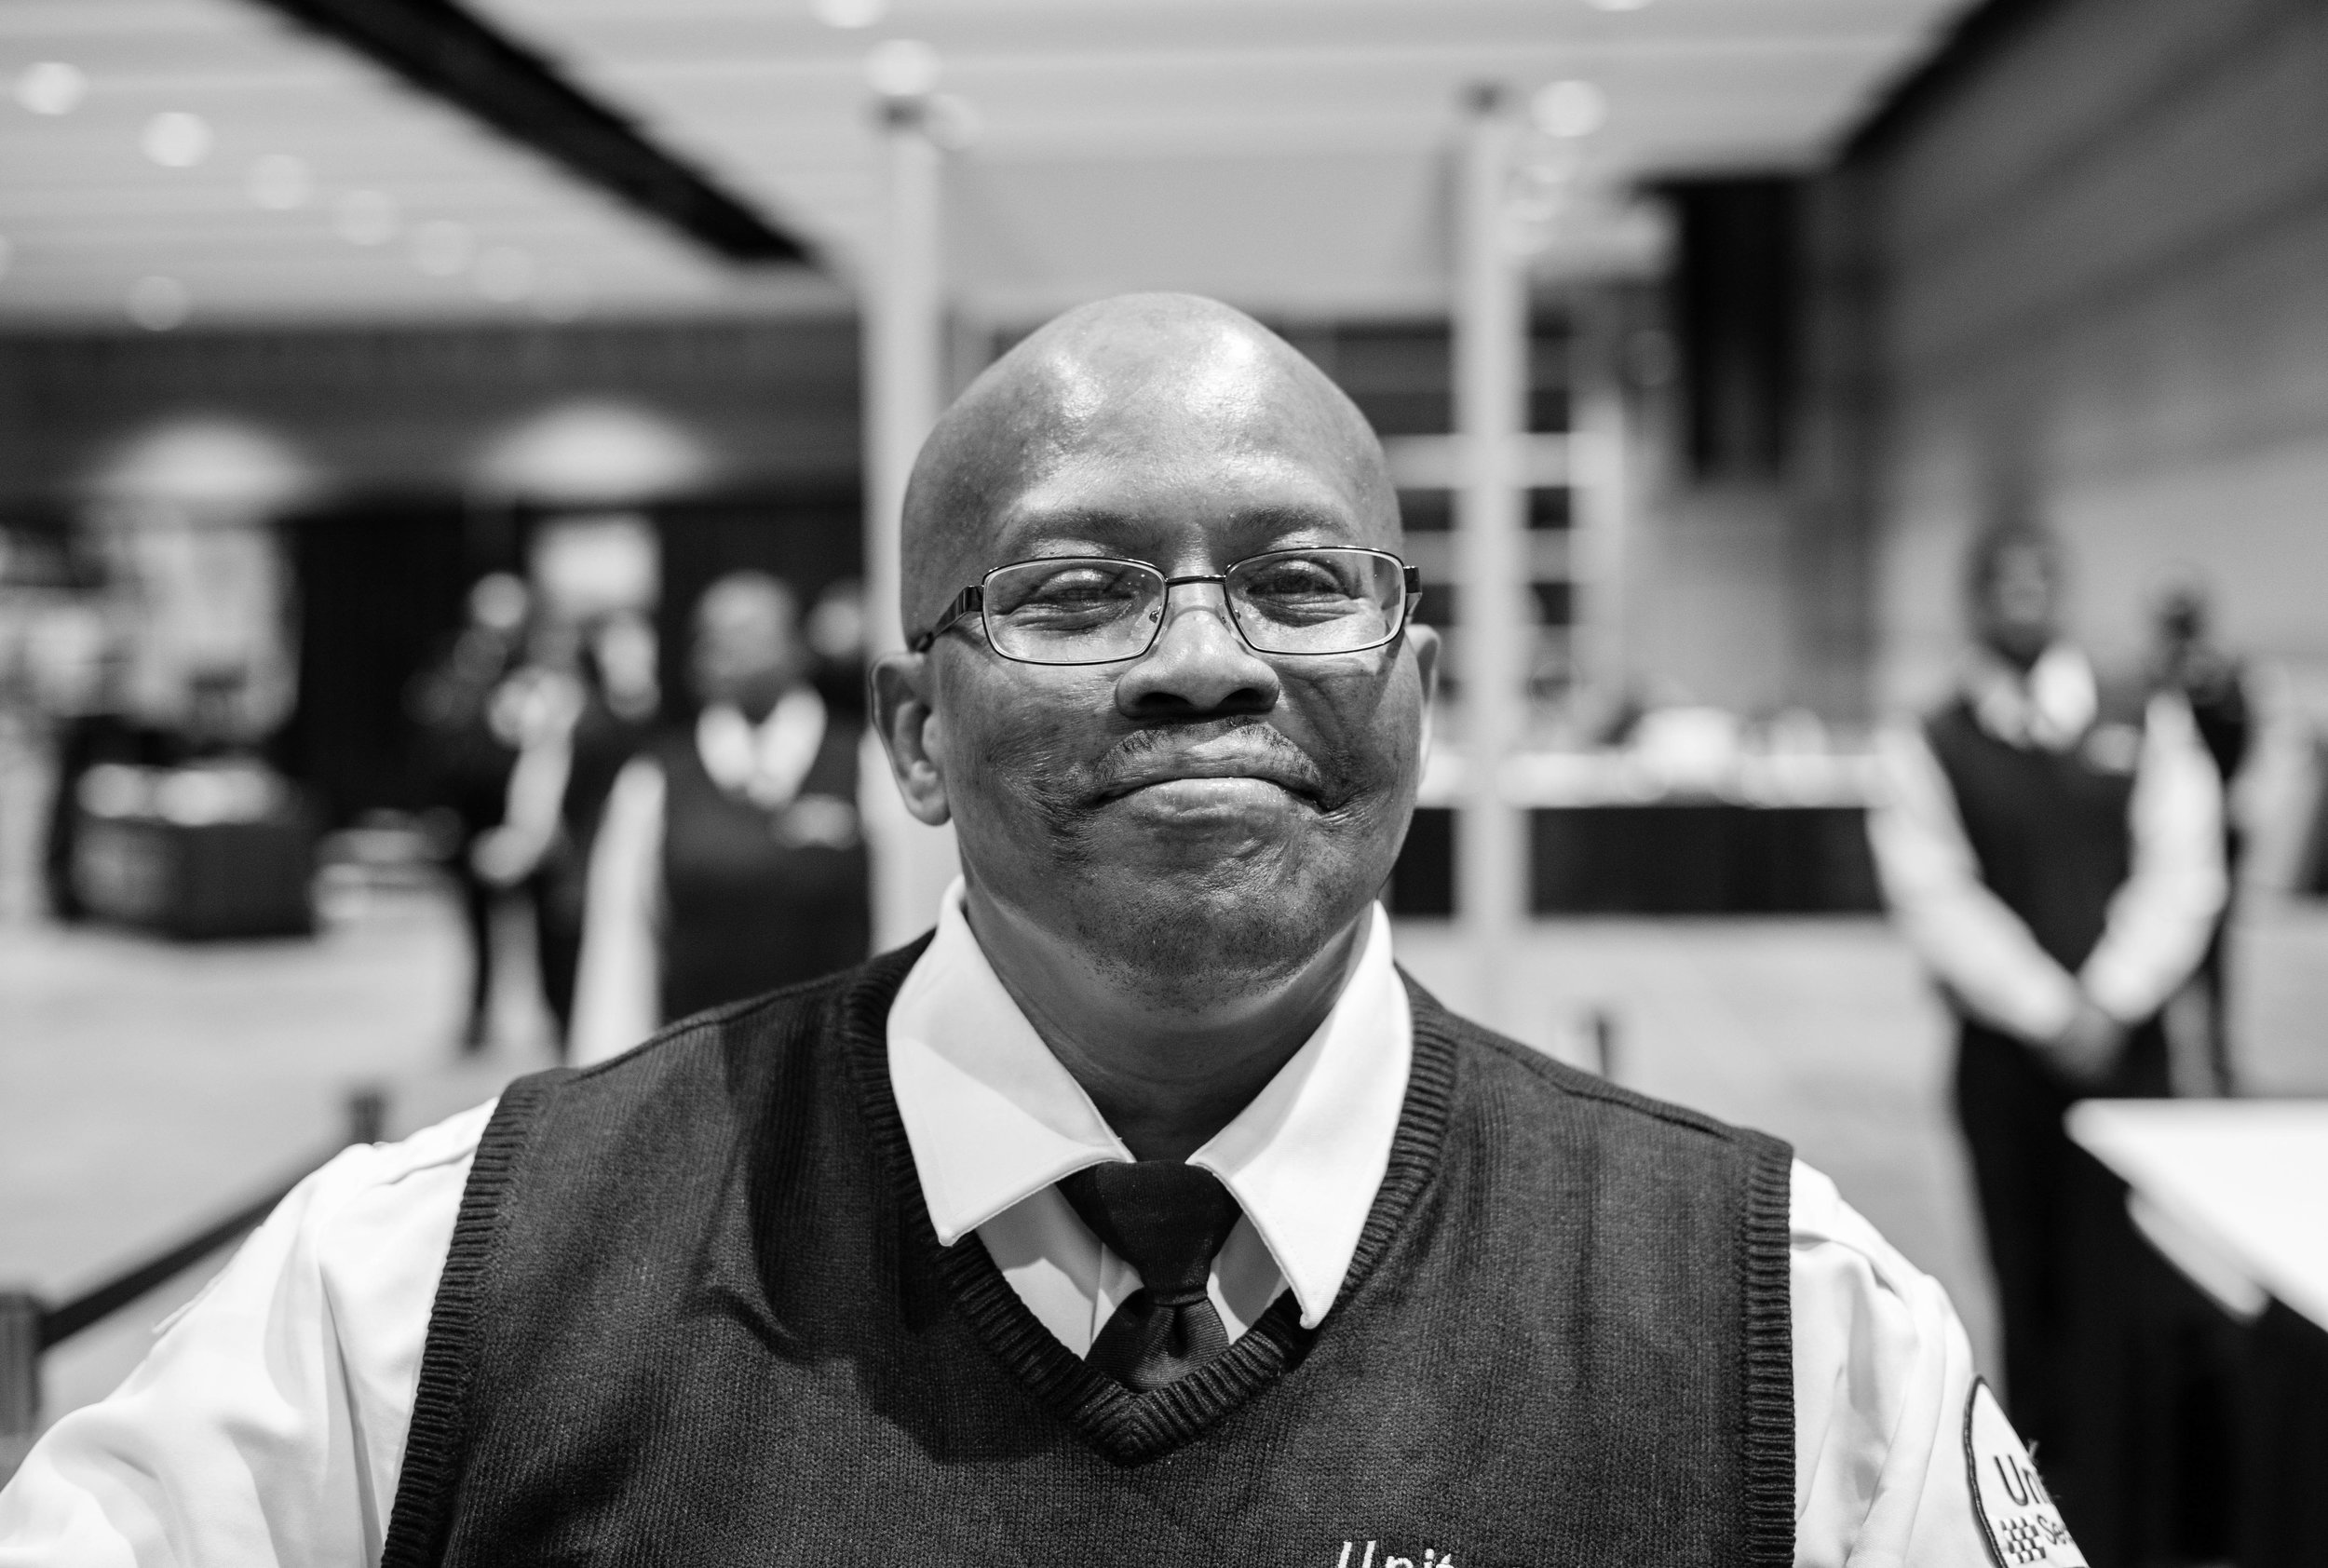 Leonard was the event staff for the convention center. He had this amazing smile that he couldn't shake. He told me as a Christian it makes him so happy seeing all of these future saints walking by,